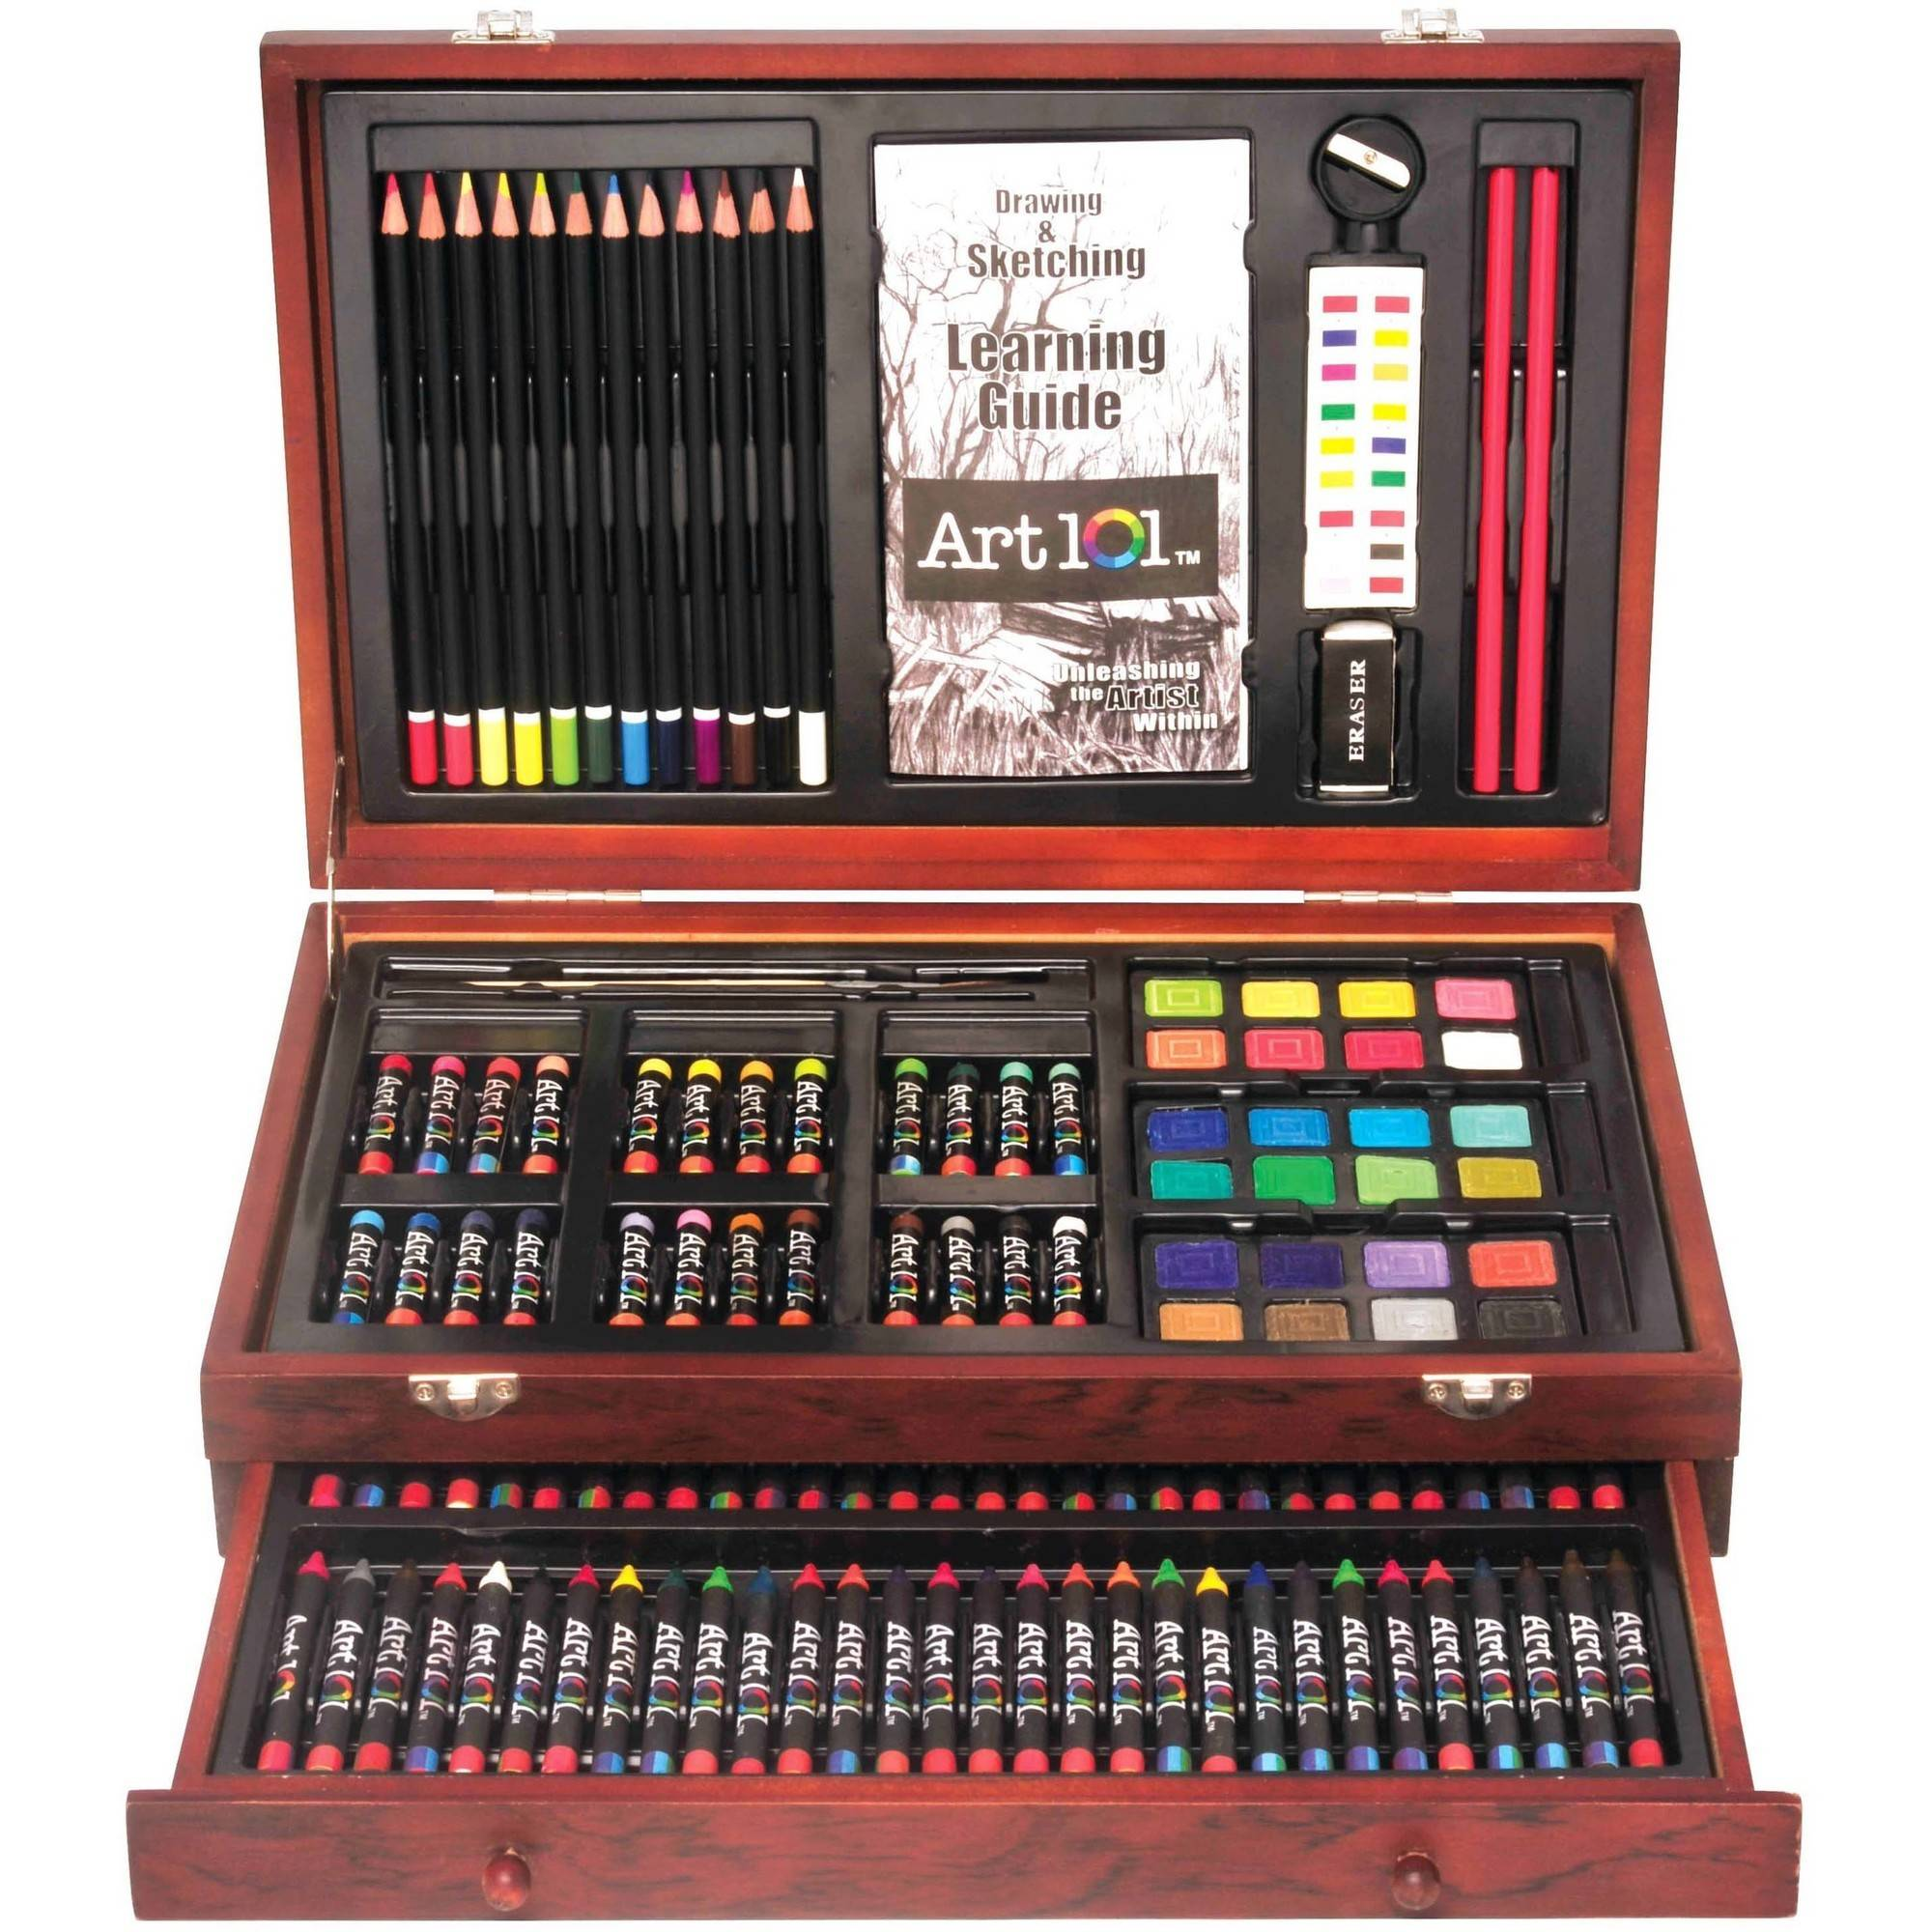 Art 101 Wooden Case 132-Piece Art Set by DM Creations International Limited